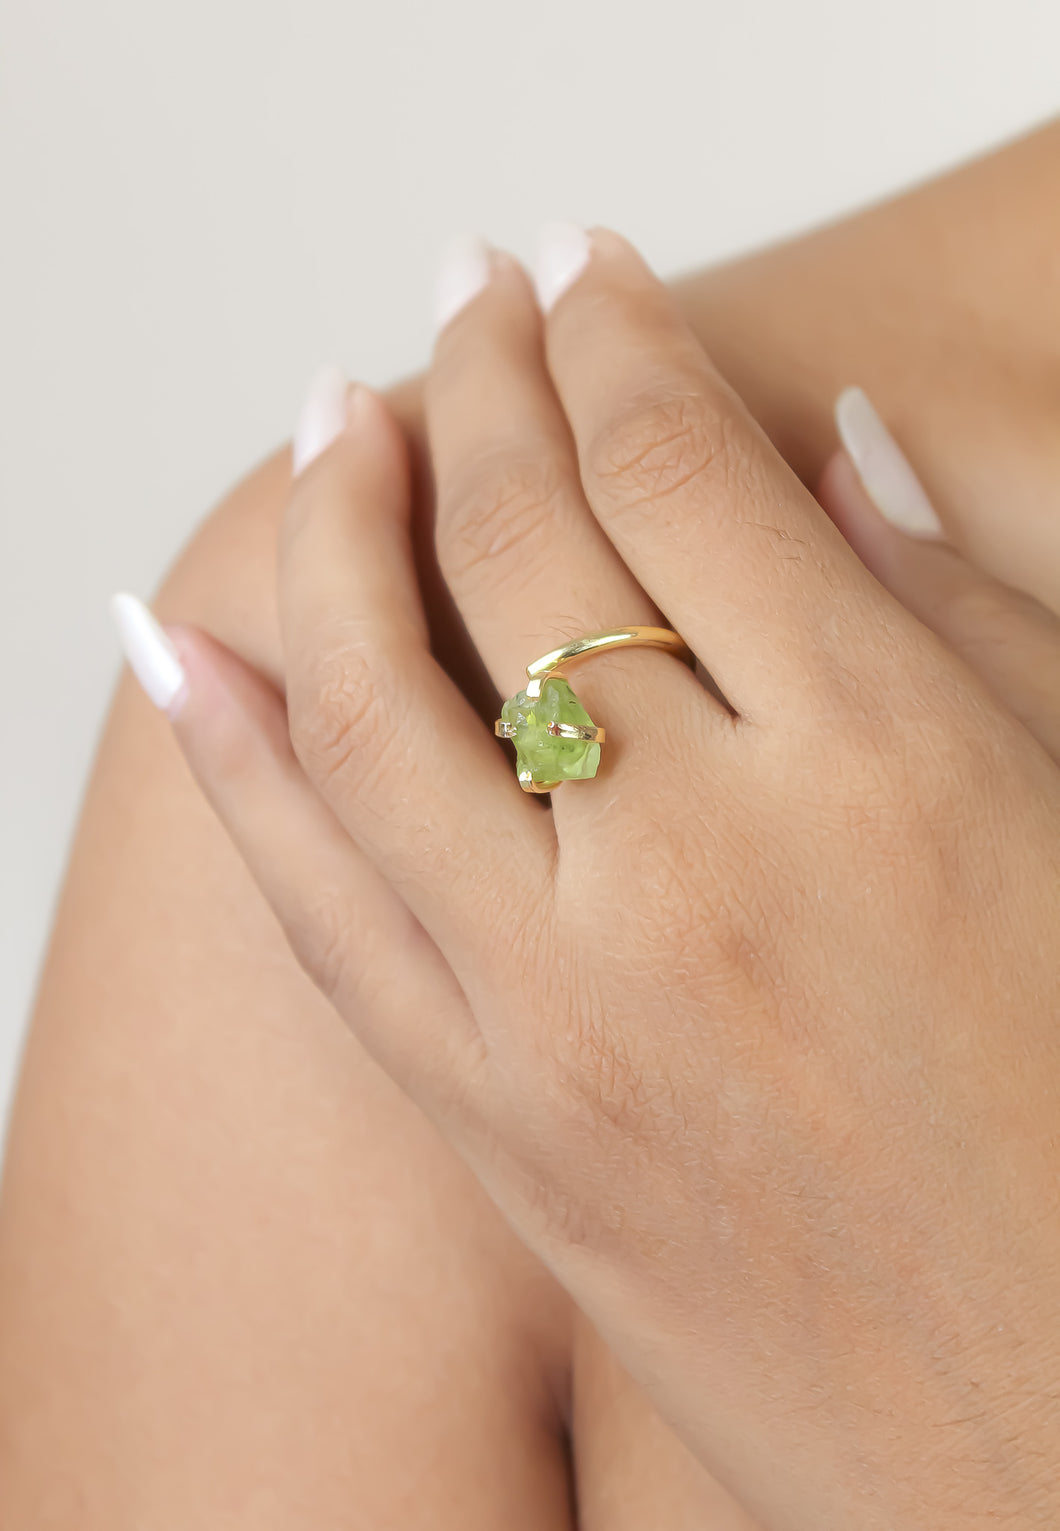 Crystal tears Earrings